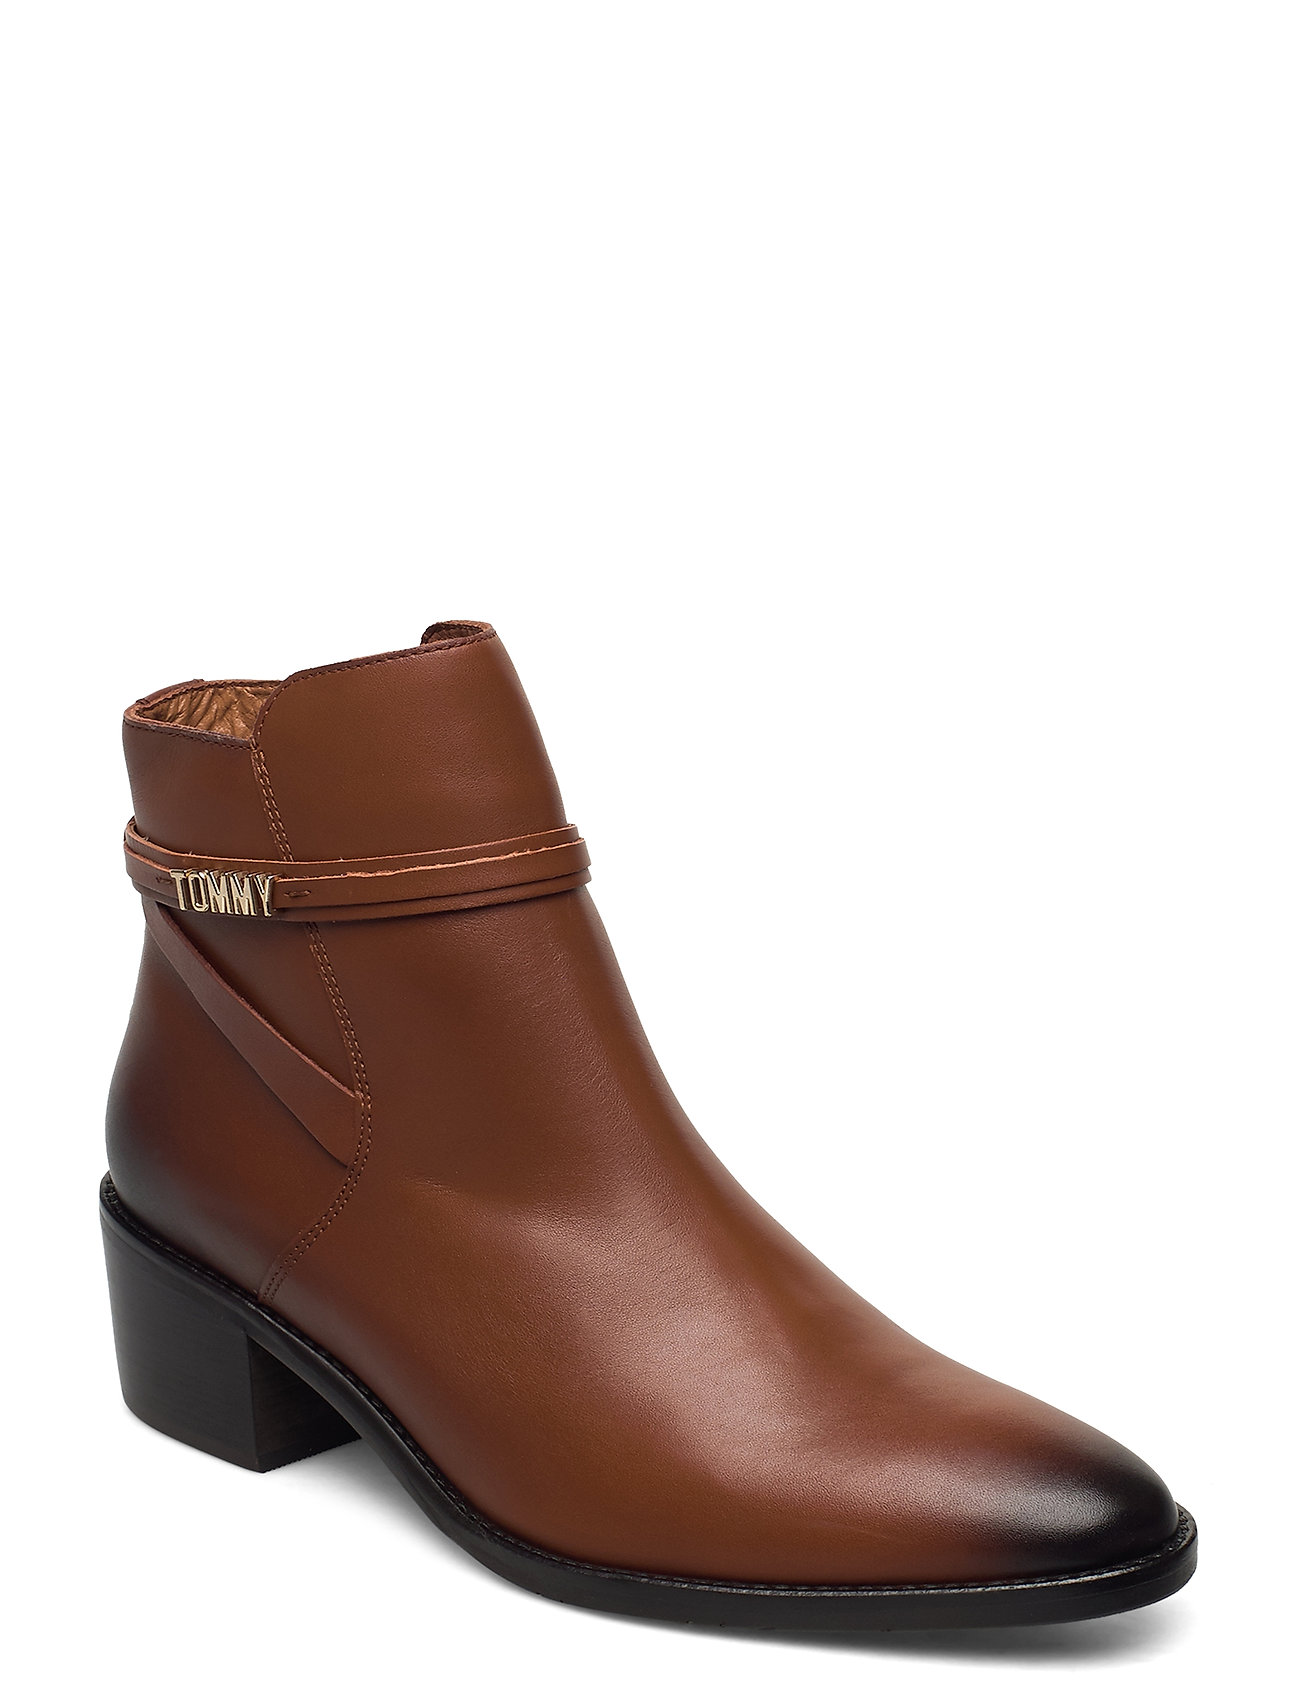 Image of Block Branding Leather Mid Boot Shoes Boots Ankle Boots Ankle Boot - Heel Brun Tommy Hilfiger (3452759807)